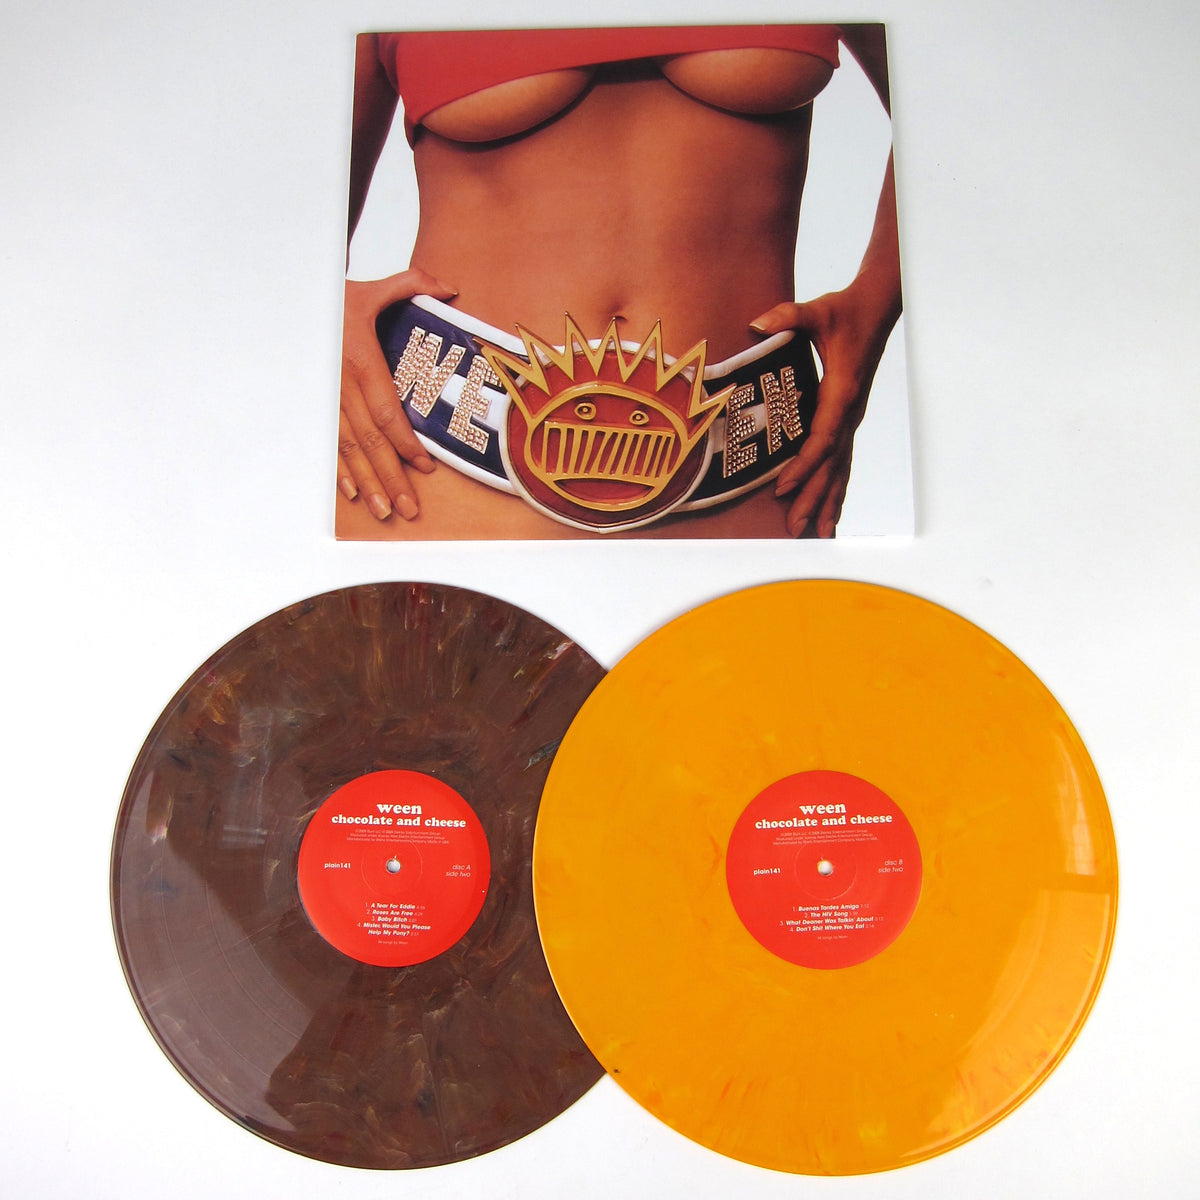 Ween: Chocolate And Cheese  Brown + Yellow Vinyl